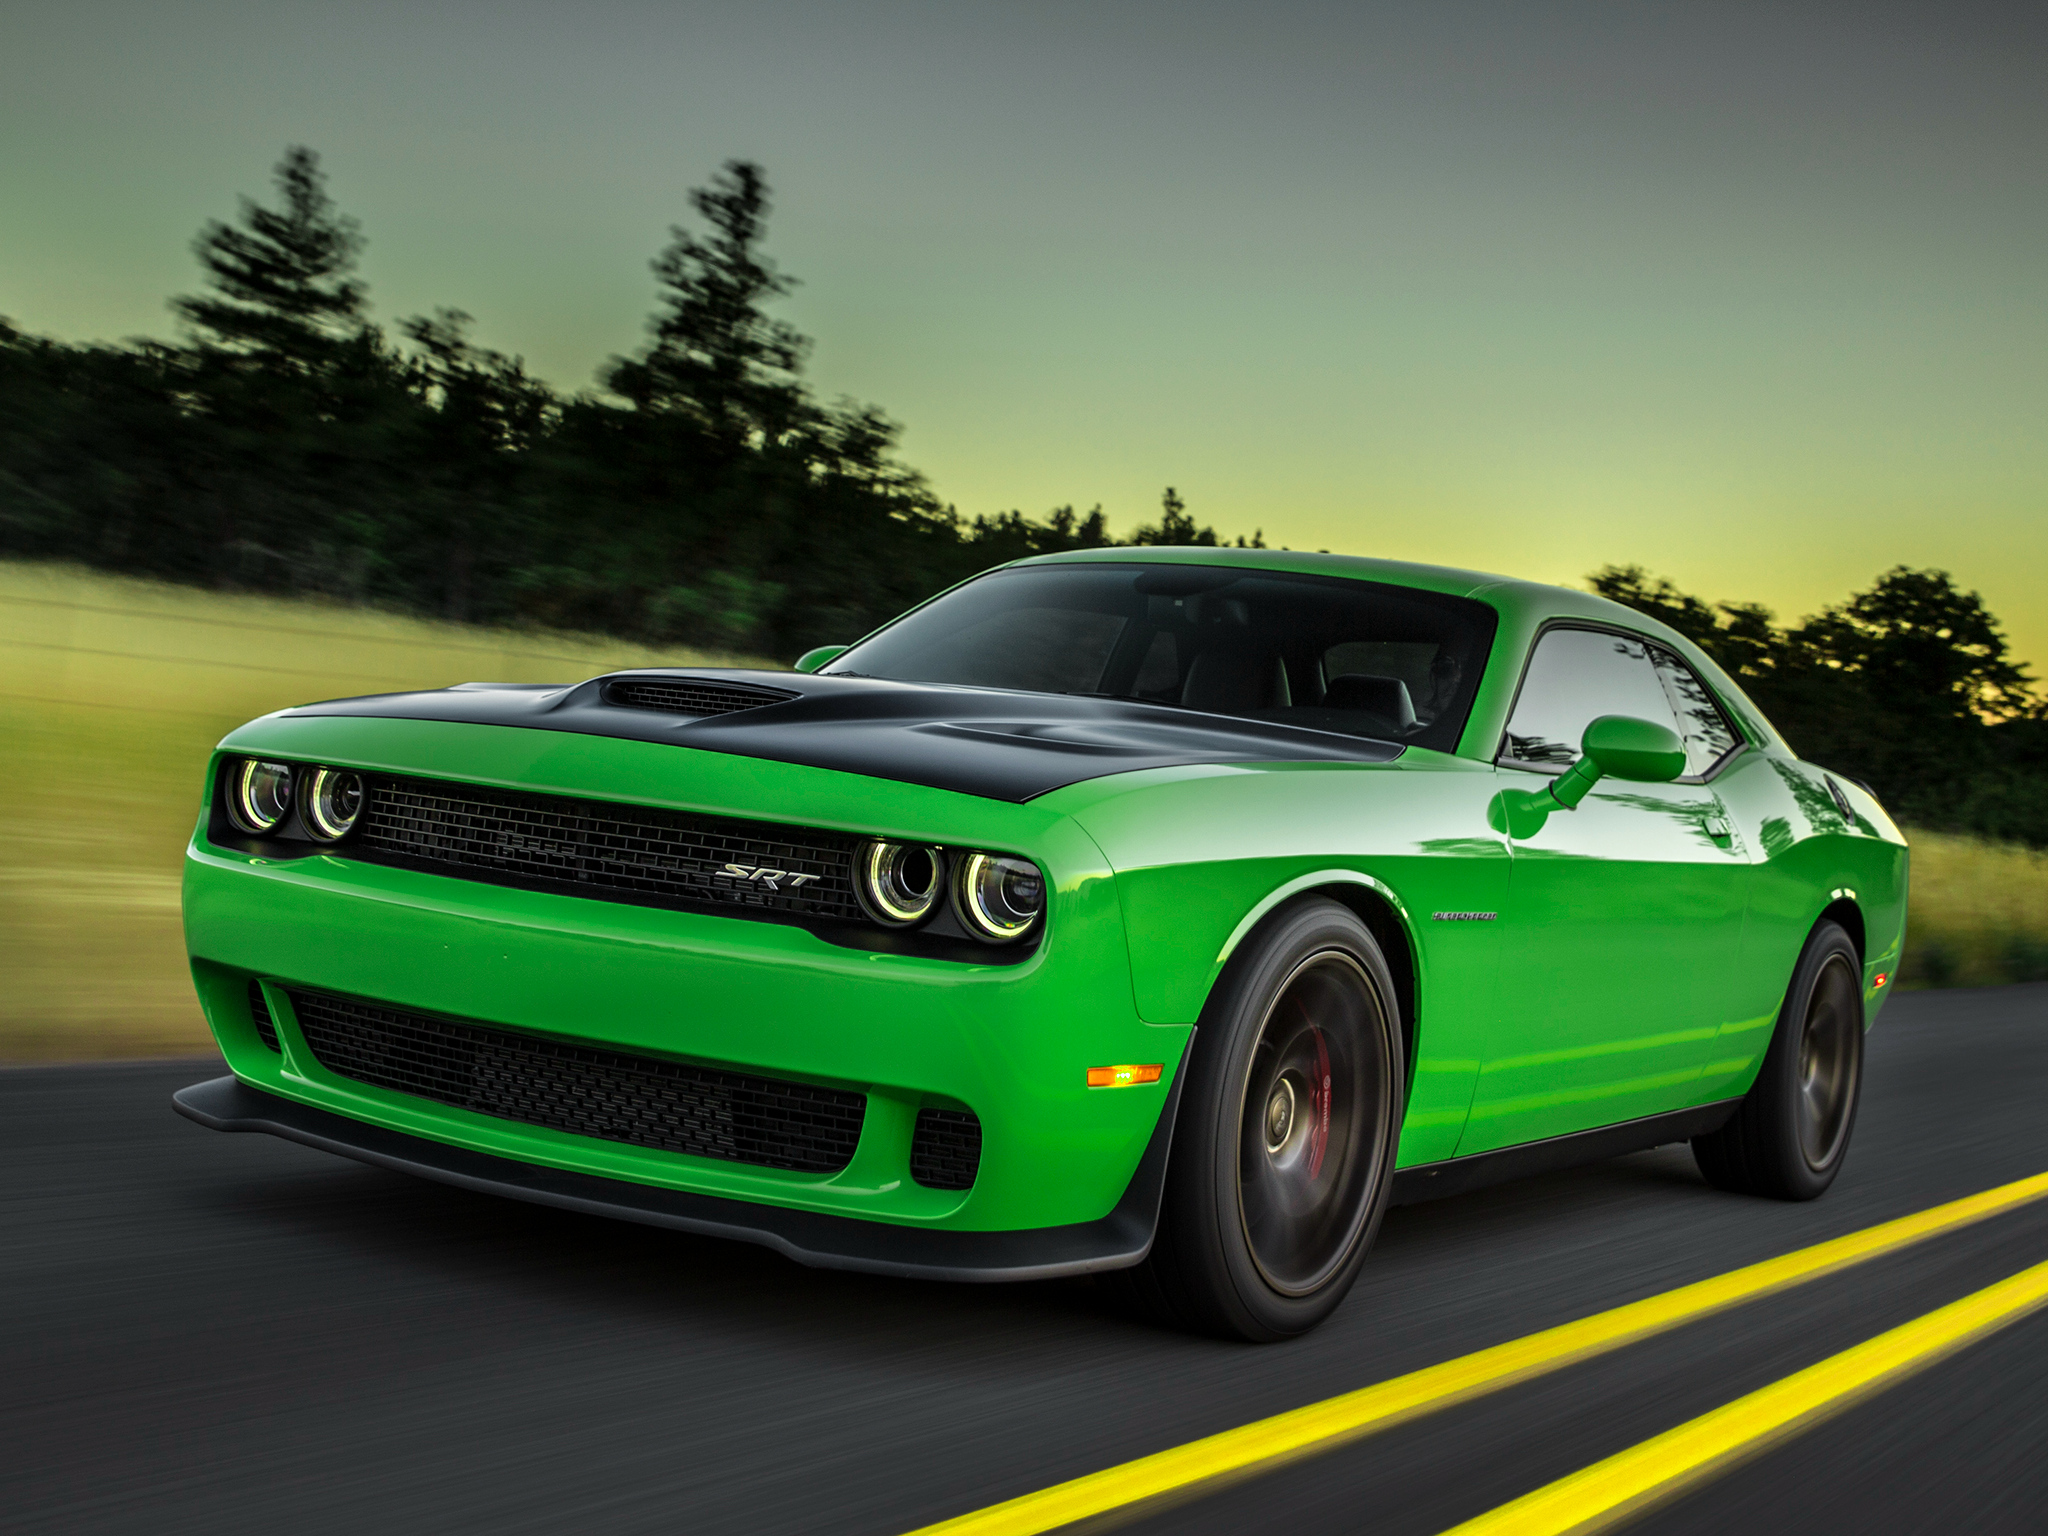 News - Dodge Teases More Insane Challenger Demon